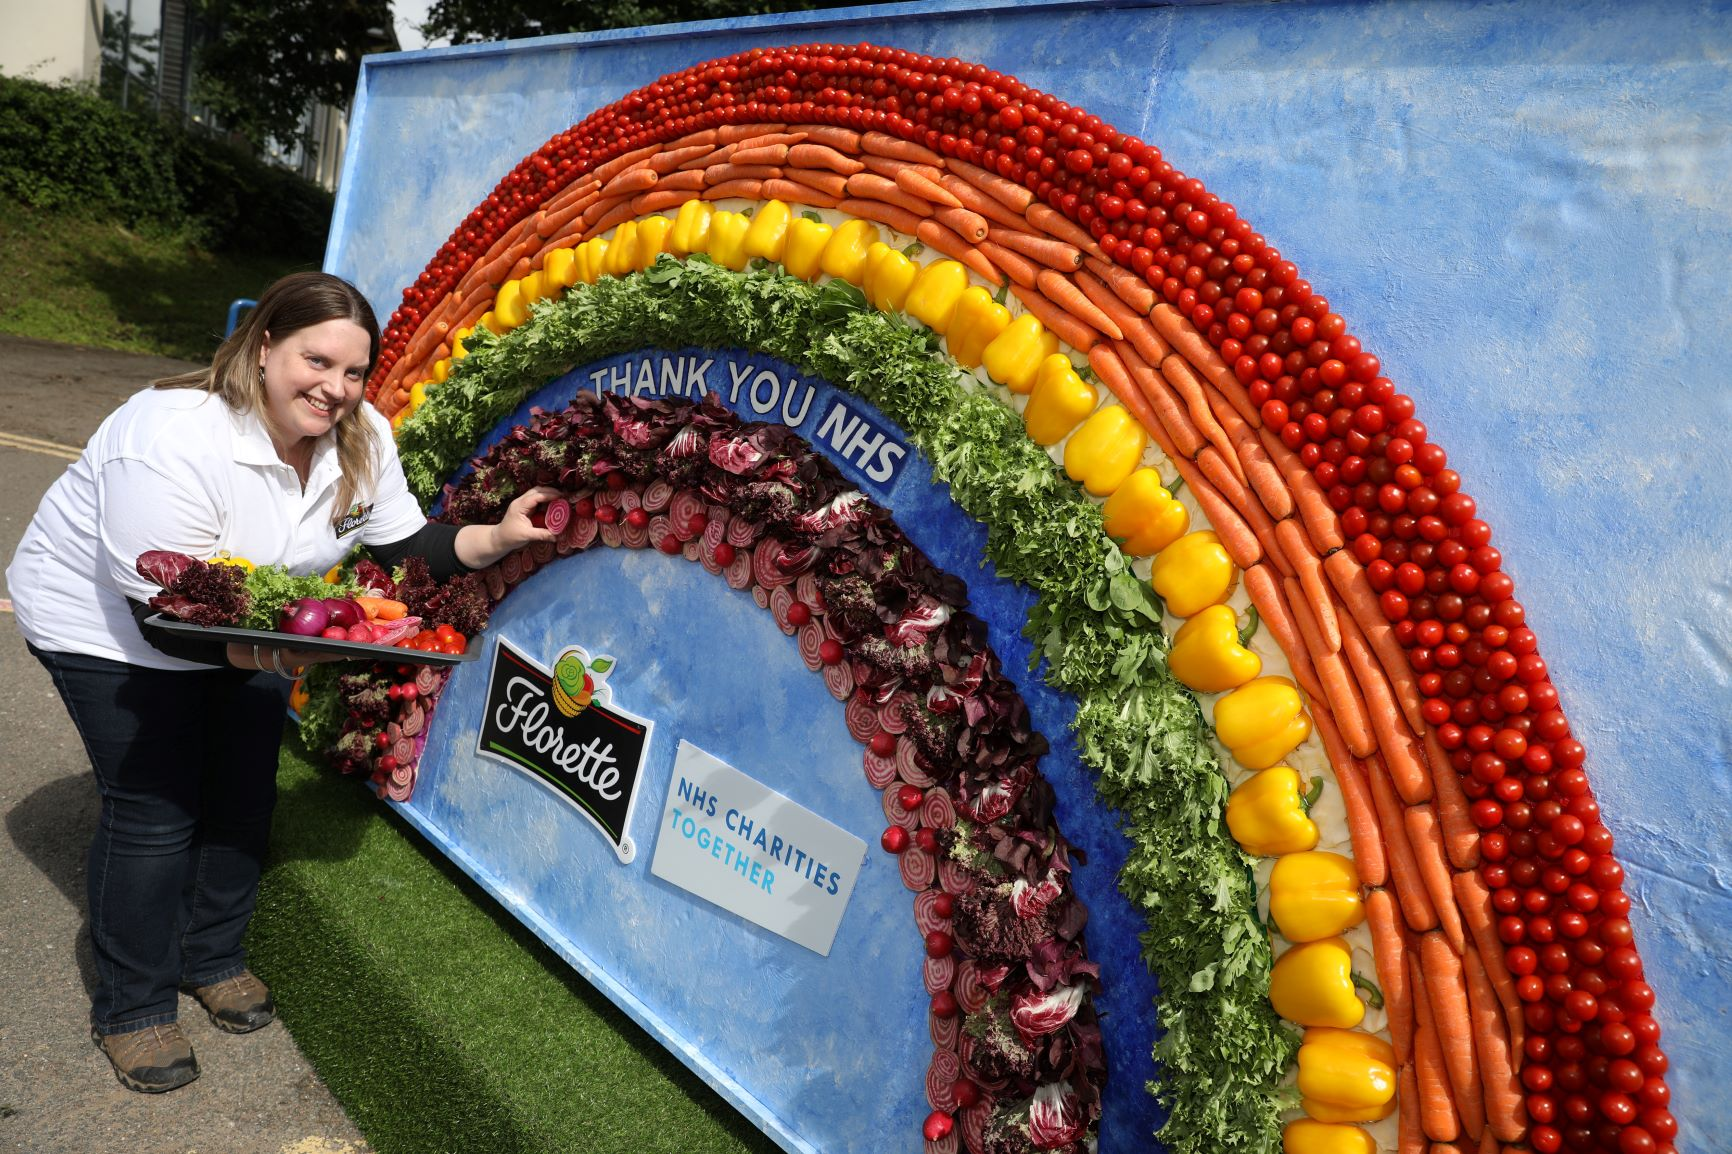 Prudence Statie was commissioned by Florette to create the two metre tall rainbow made of 1208 salad ingredients to mark NHS Frontline Day resized